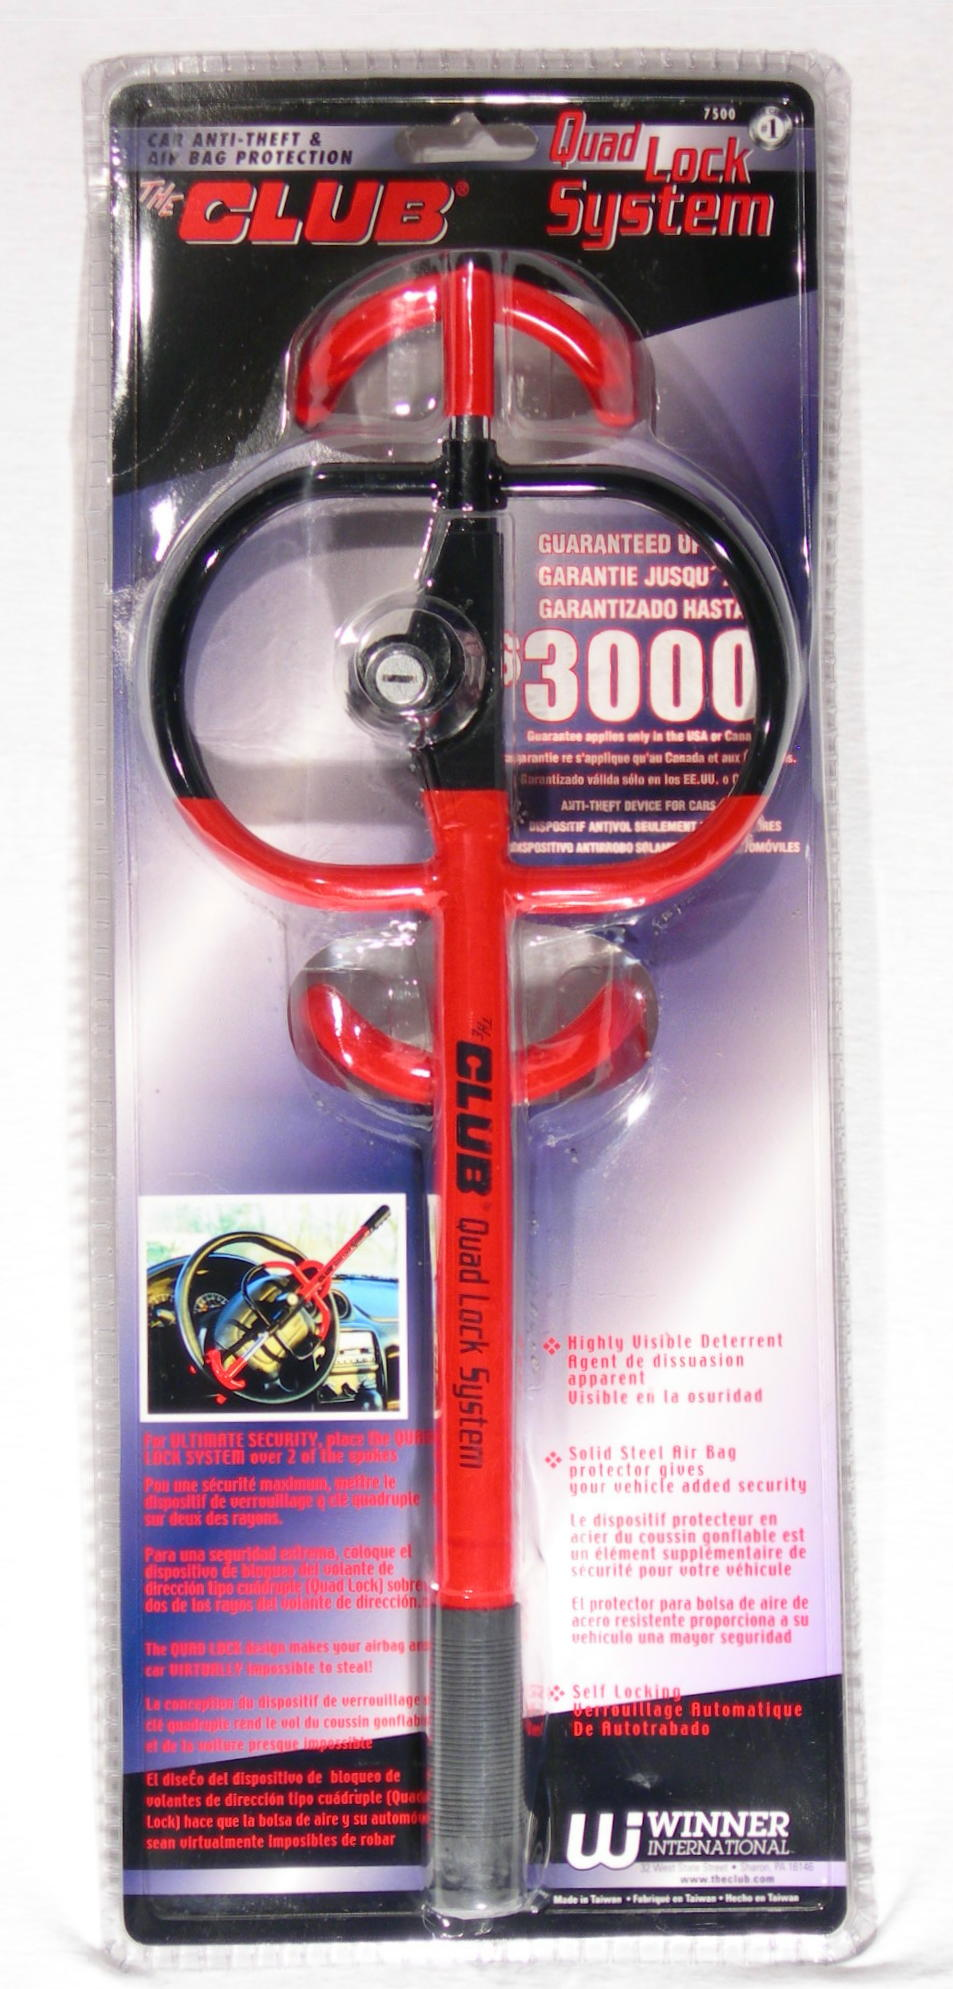 Winner International 7500 Club Quad System Lock